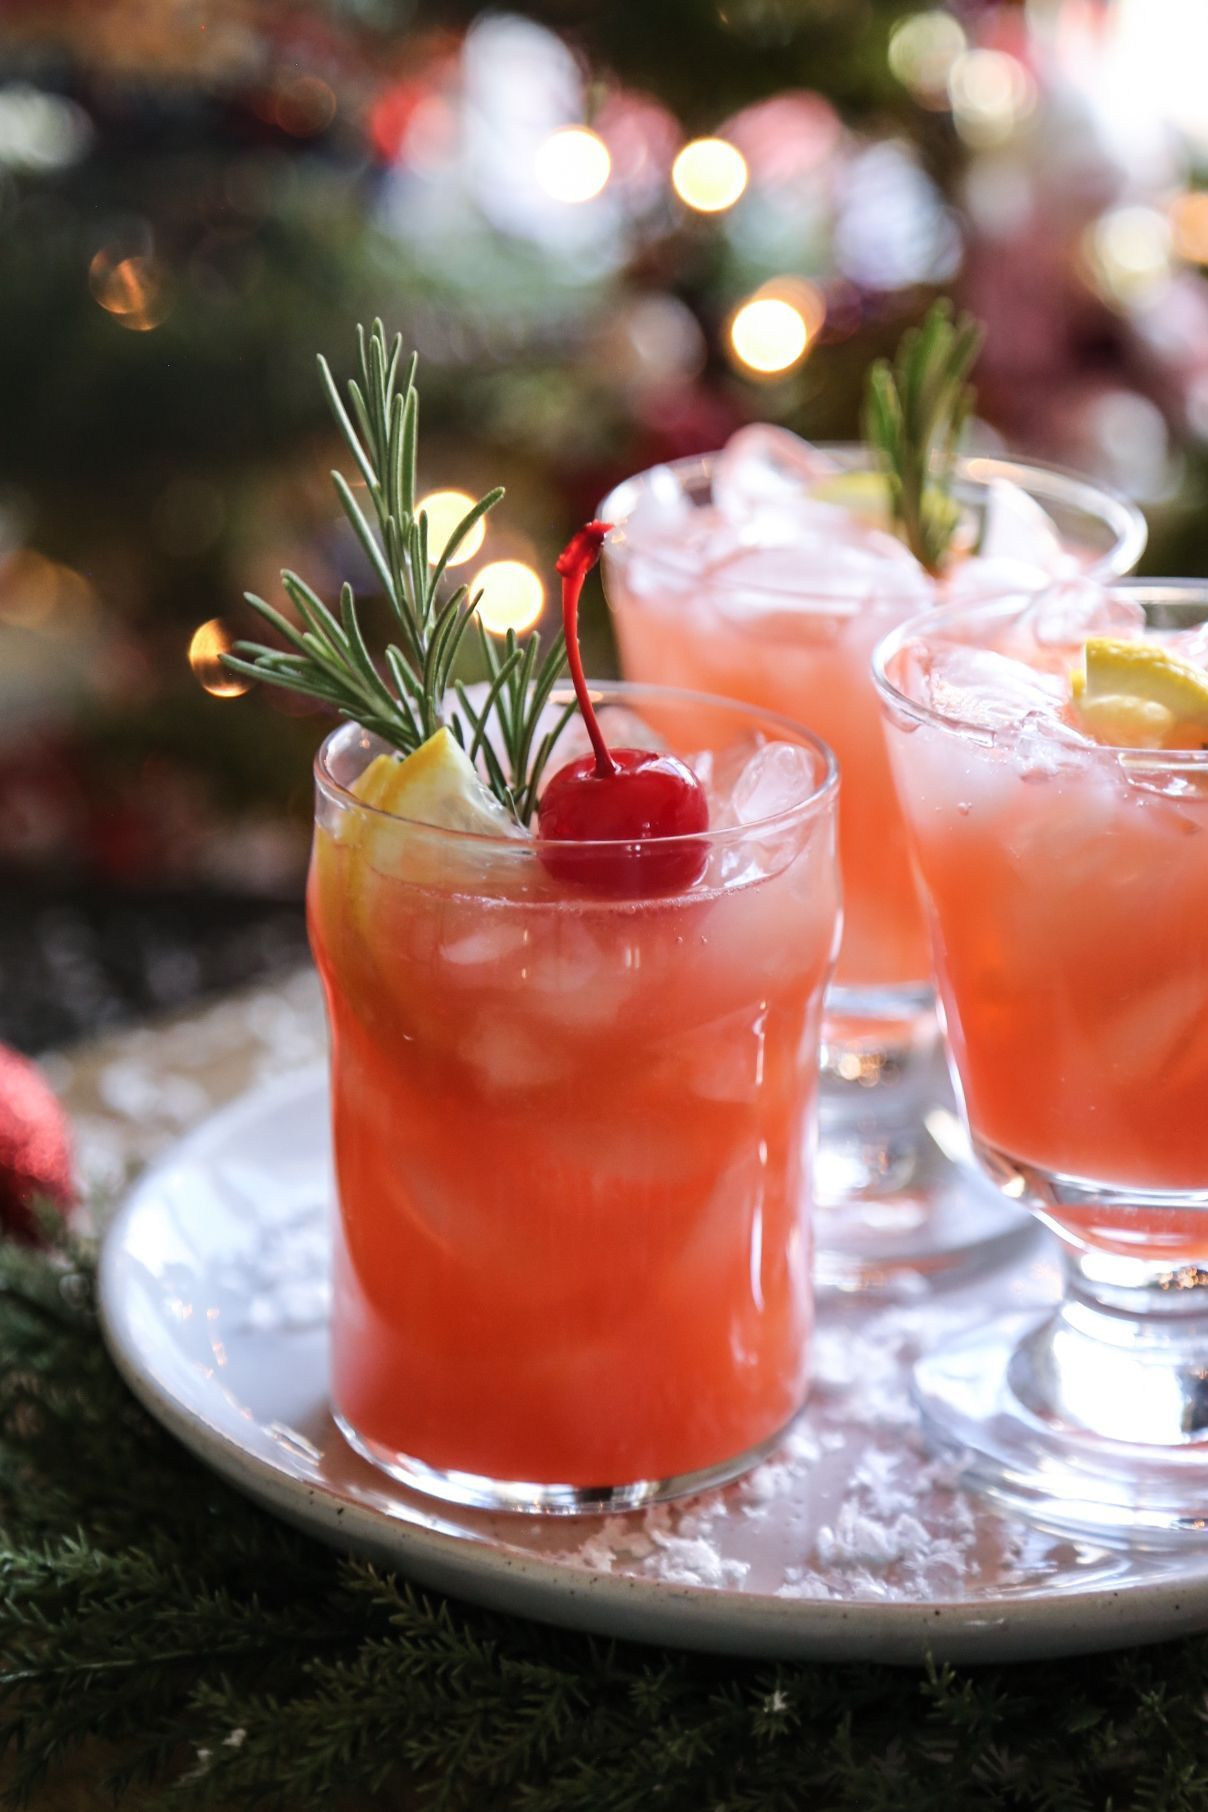 Christmas Morning Punch - Climbing Grier Mountain #christmasmorningpunch Christmas Morning Punch #christmasmorningpunch Christmas Morning Punch - Climbing Grier Mountain #christmasmorningpunch Christmas Morning Punch #christmasmorningpunch